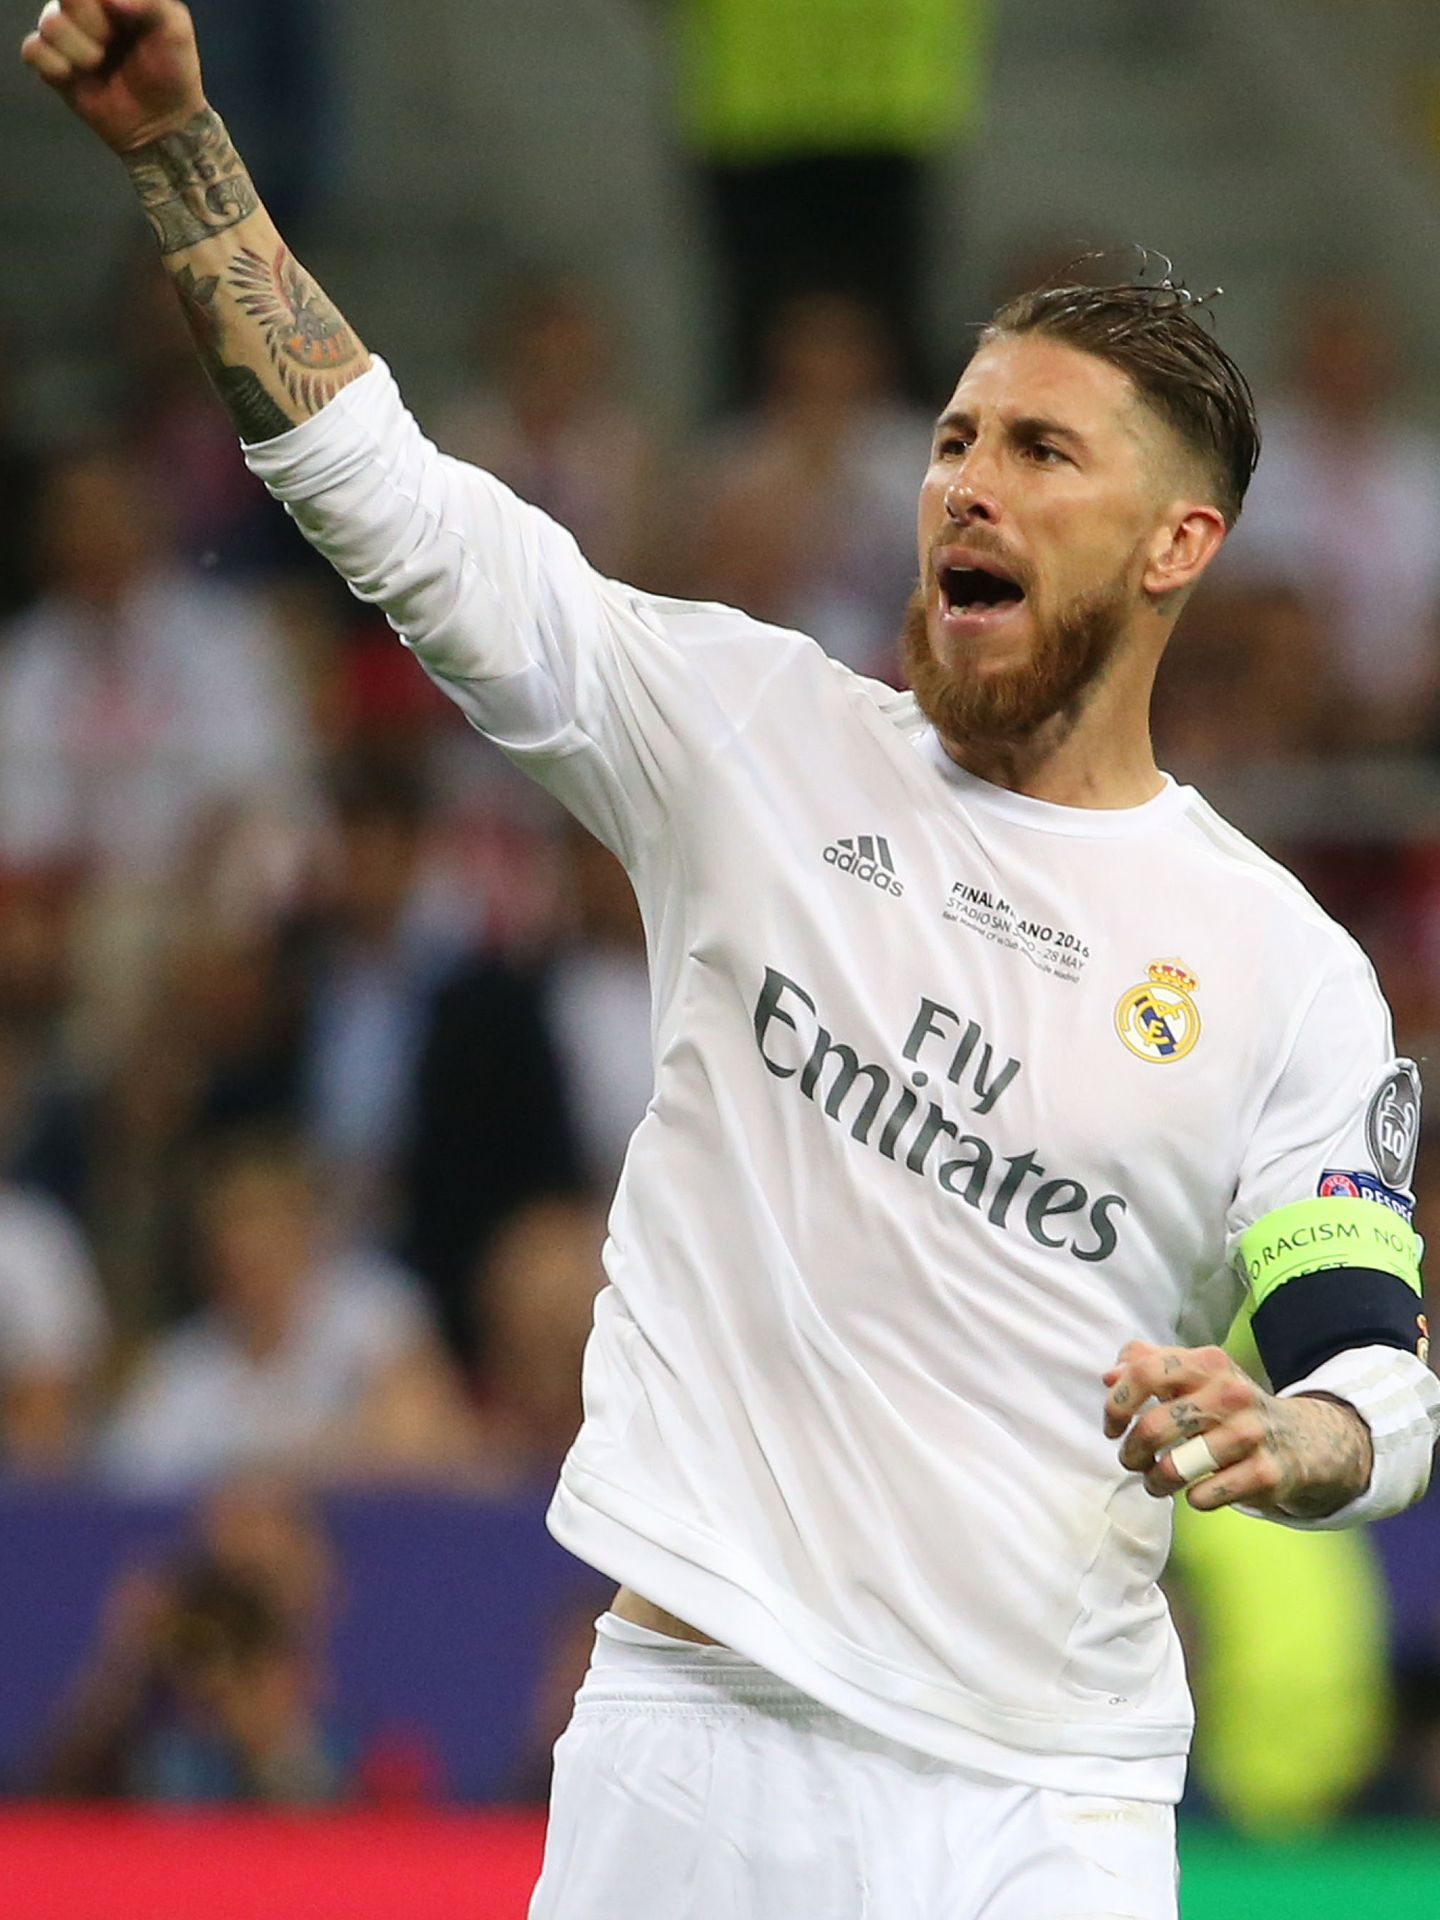 Soccer Football - Atletico Madrid v Real Madrid - UEFA Champions League Final - San Siro Stadium, Milan, Italy - 28 5 16 Real Madrid's Sergio Ramos celebrates scoring during the penalty shootout Reuters   Stefano Rellandini Livepic EDITORIAL USE ONLY.